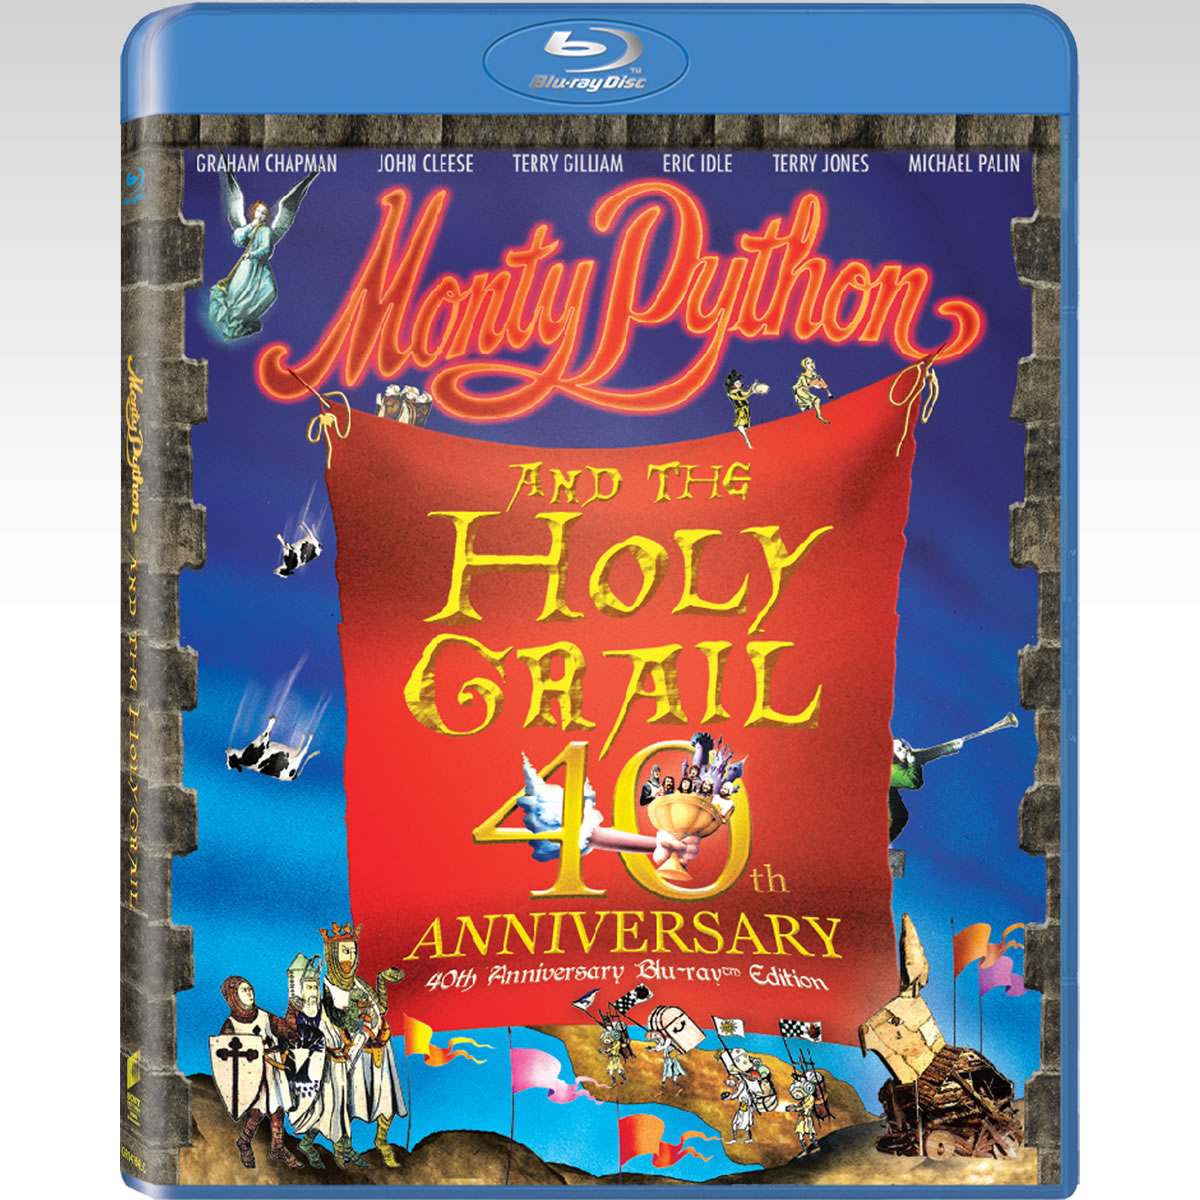 MONTY PYTHON & THE HOLY GRAIL - ΟΙ ΙΠΠΟΤΕΣ ΤΗΣ ΕΛΕΕΙΝΗΣ ΤΡΑΠΕΖΗΣ 40th Anniversary Deluxe Edition (BLU-RAY)